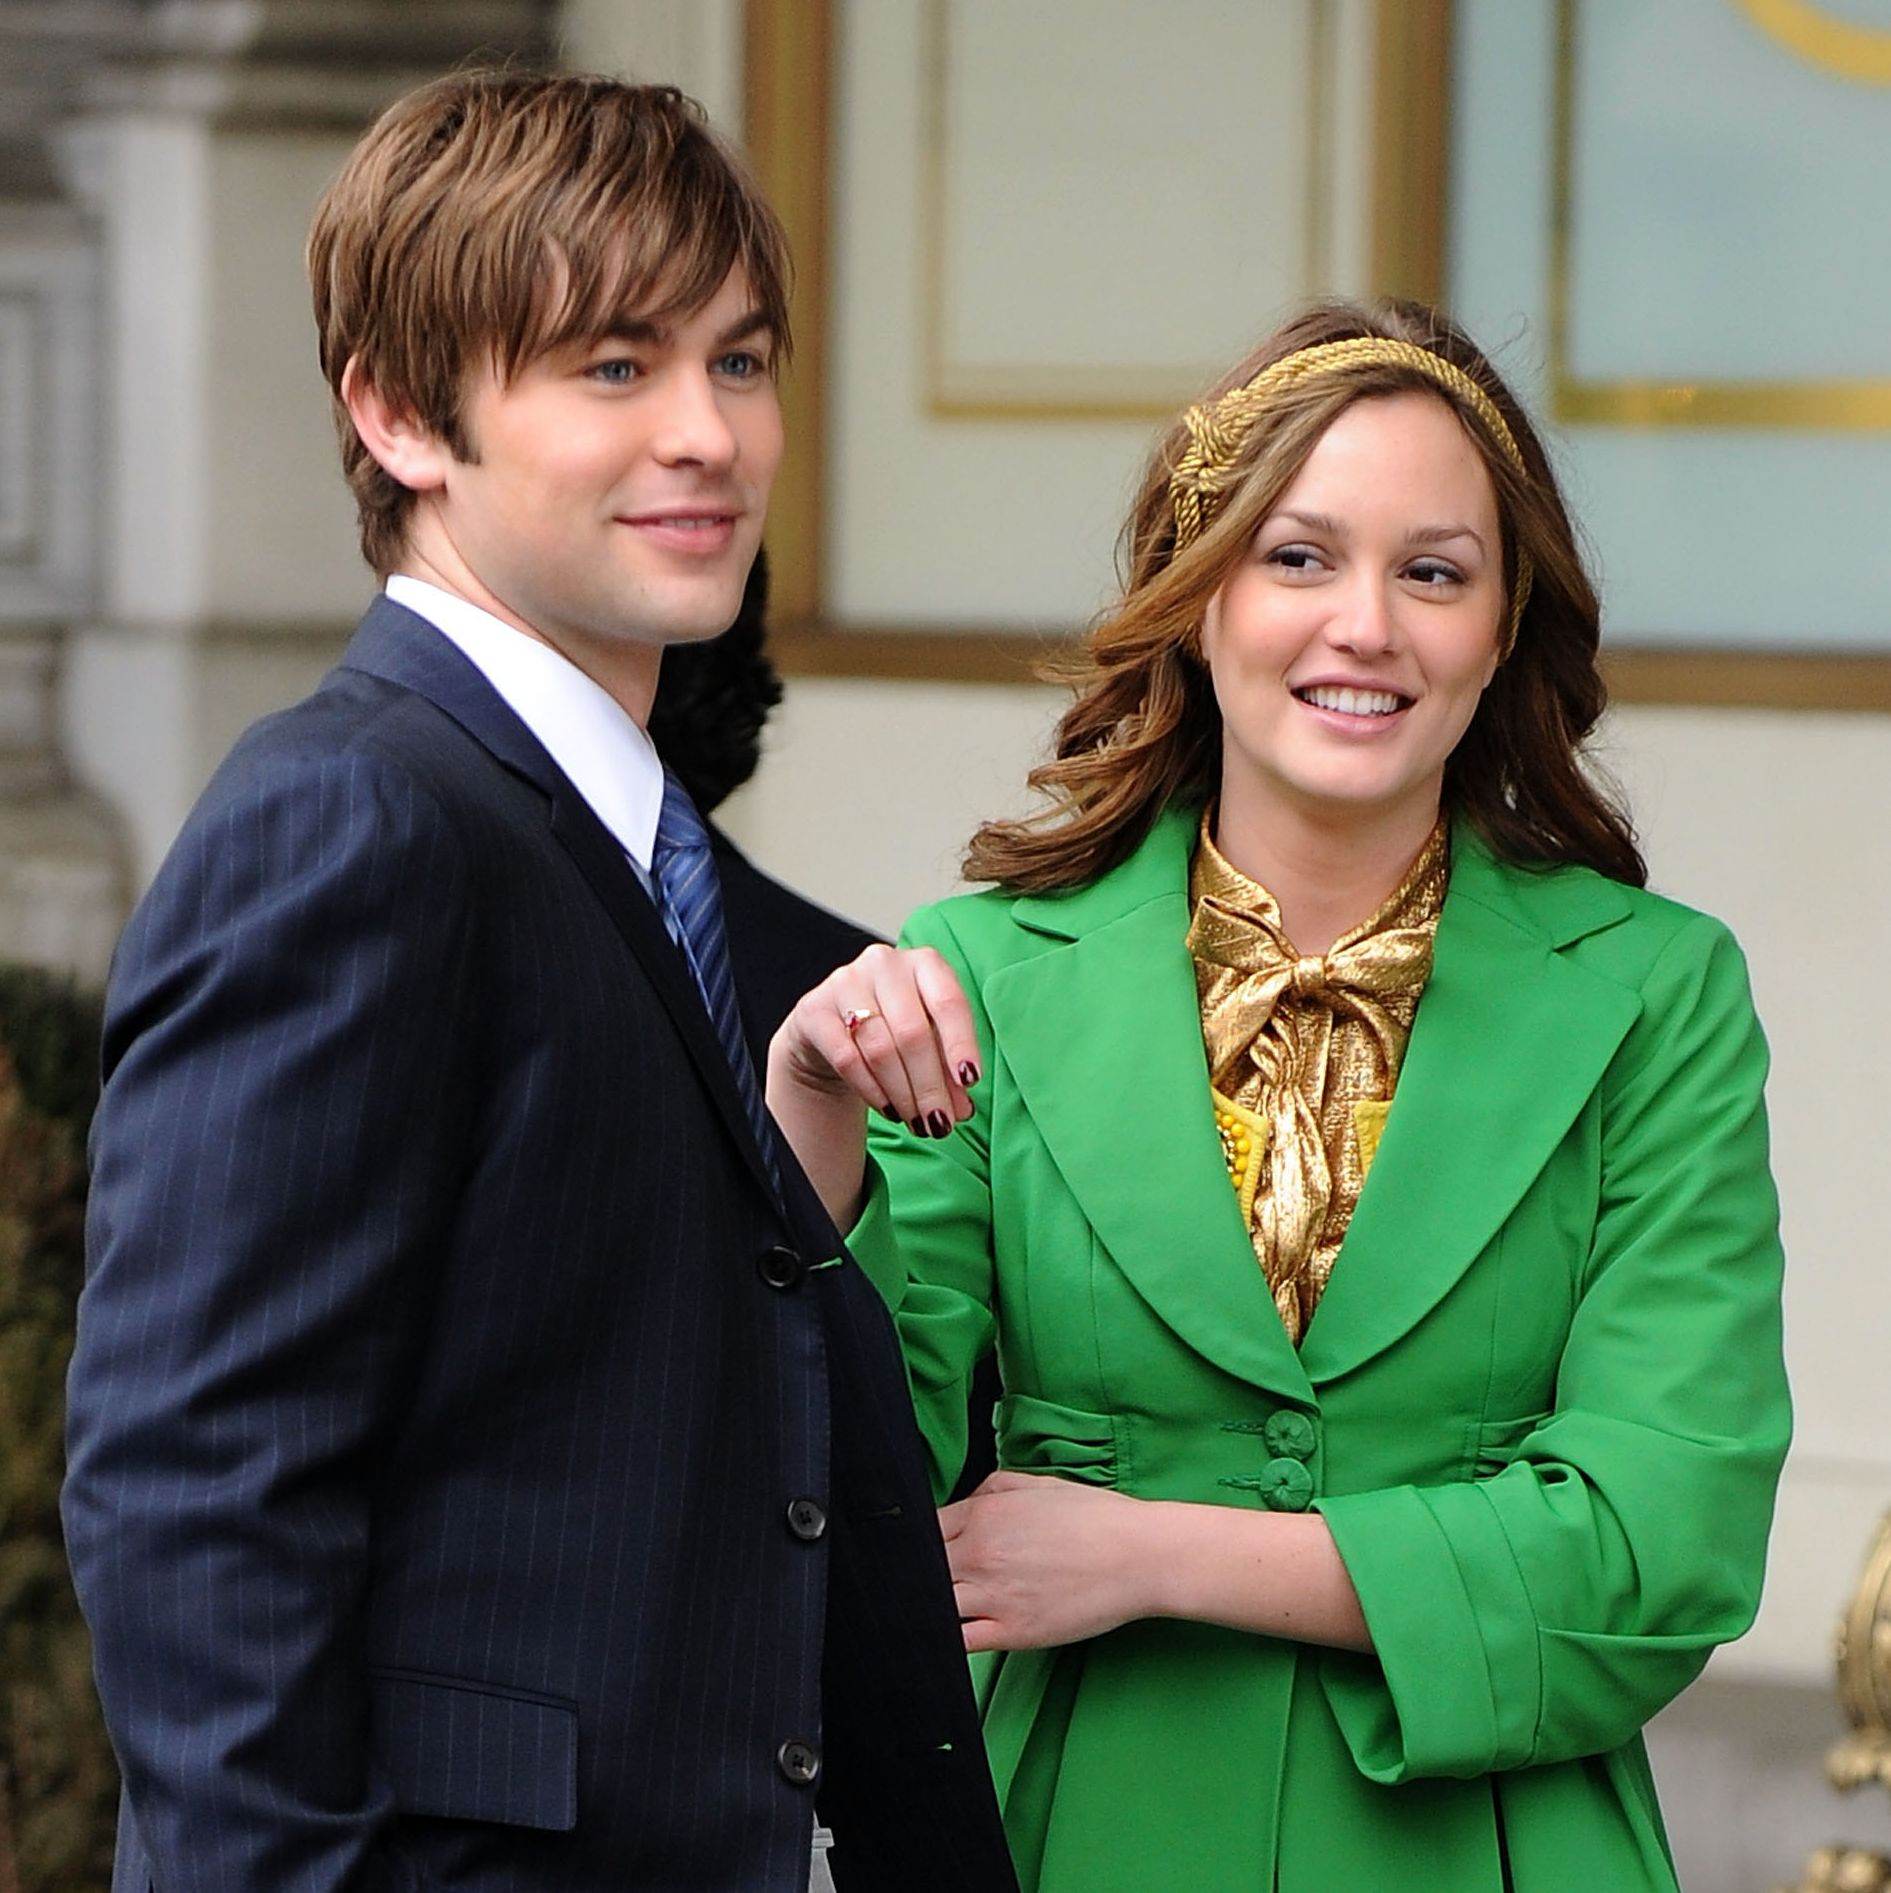 Chace Crawford Is 'Up For' But Skeptical About That 'Gossip Girl' Reboot